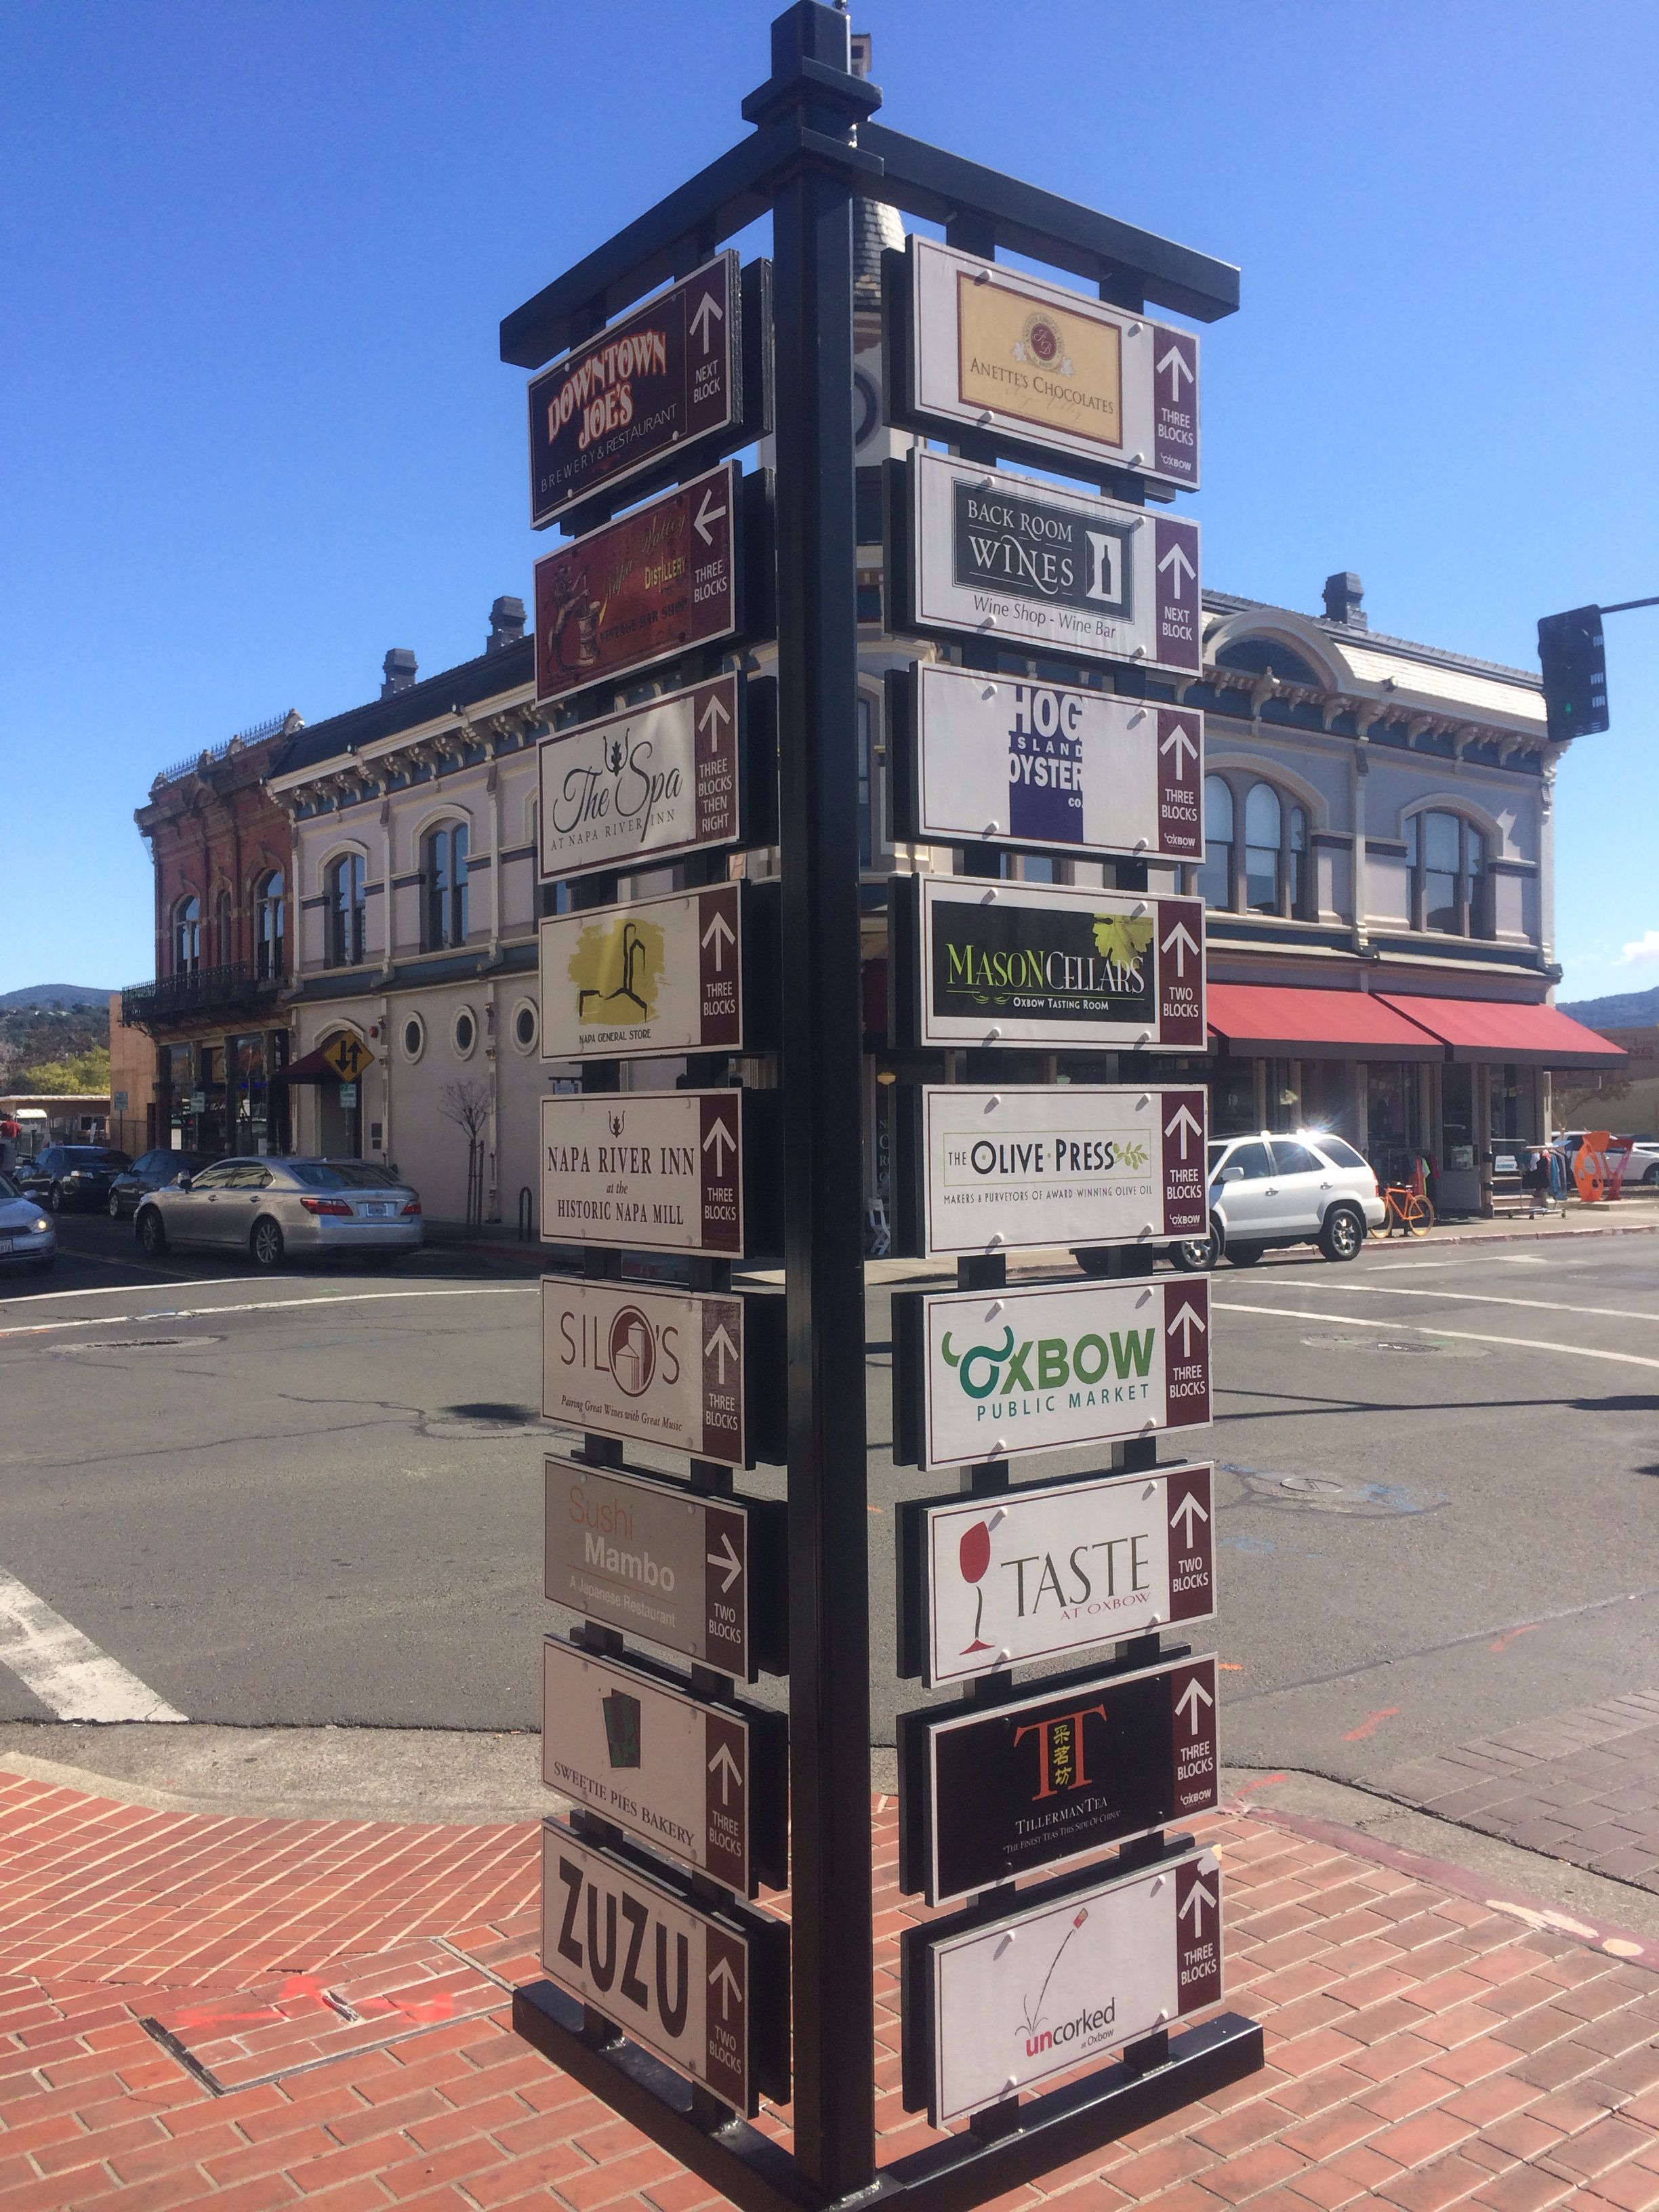 Downtown Napa is becoming a happening place with many fine eateries bars and a nice River Front